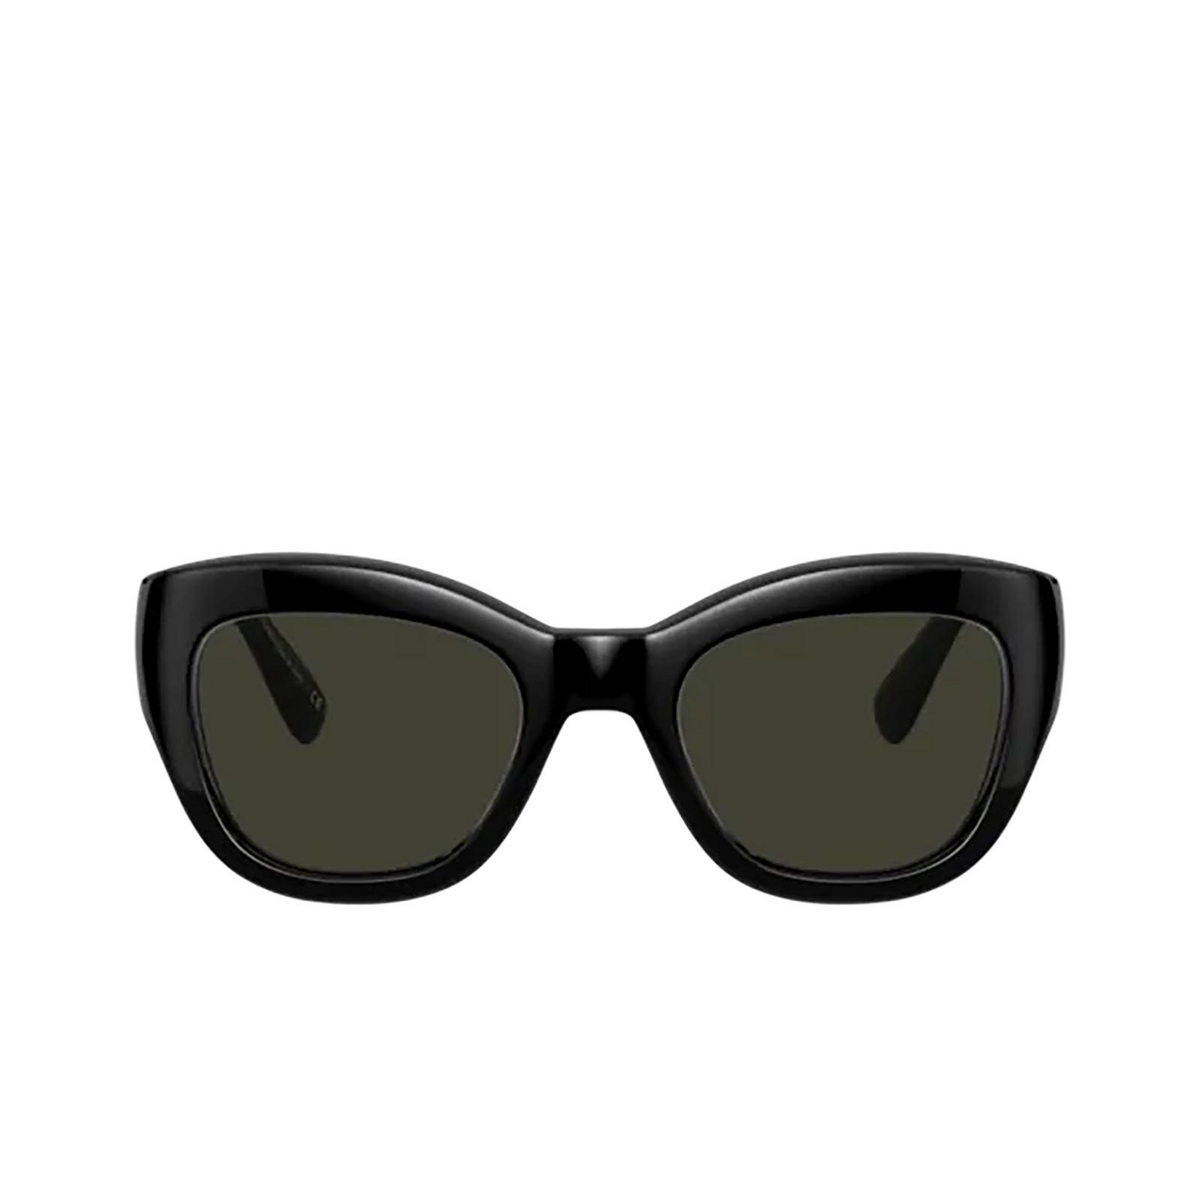 Oliver Peoples® Butterfly Sunglasses: Lalit OV5430SU color Black 100582 - front view.